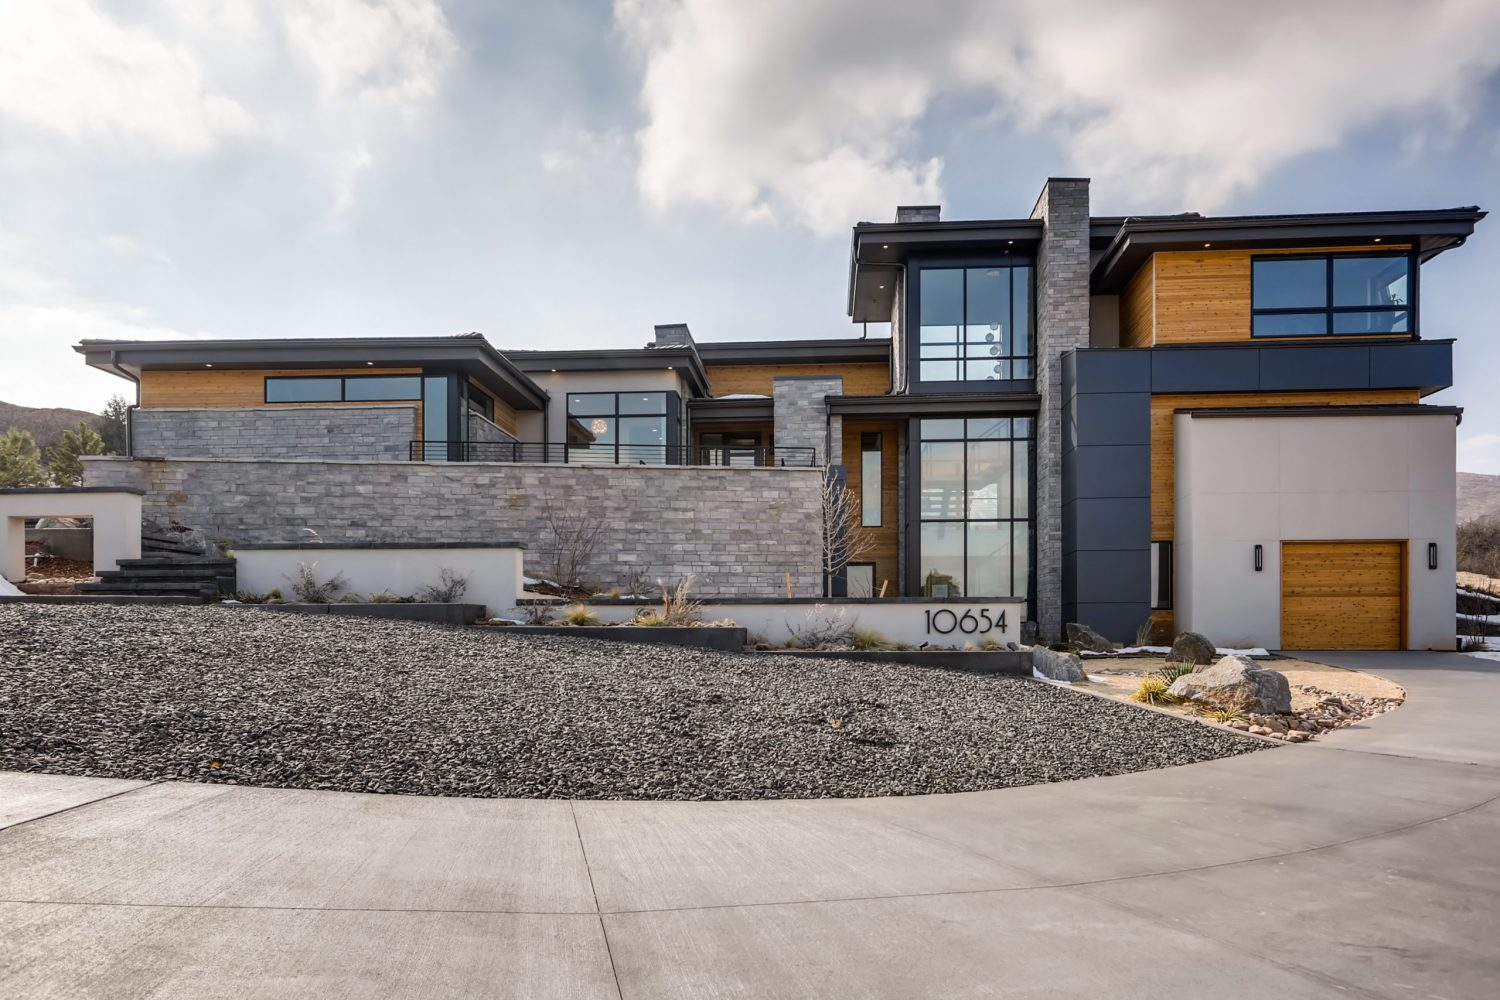 Ultra modern home in Colorado with stone accents designed by Godden Sudik Architects